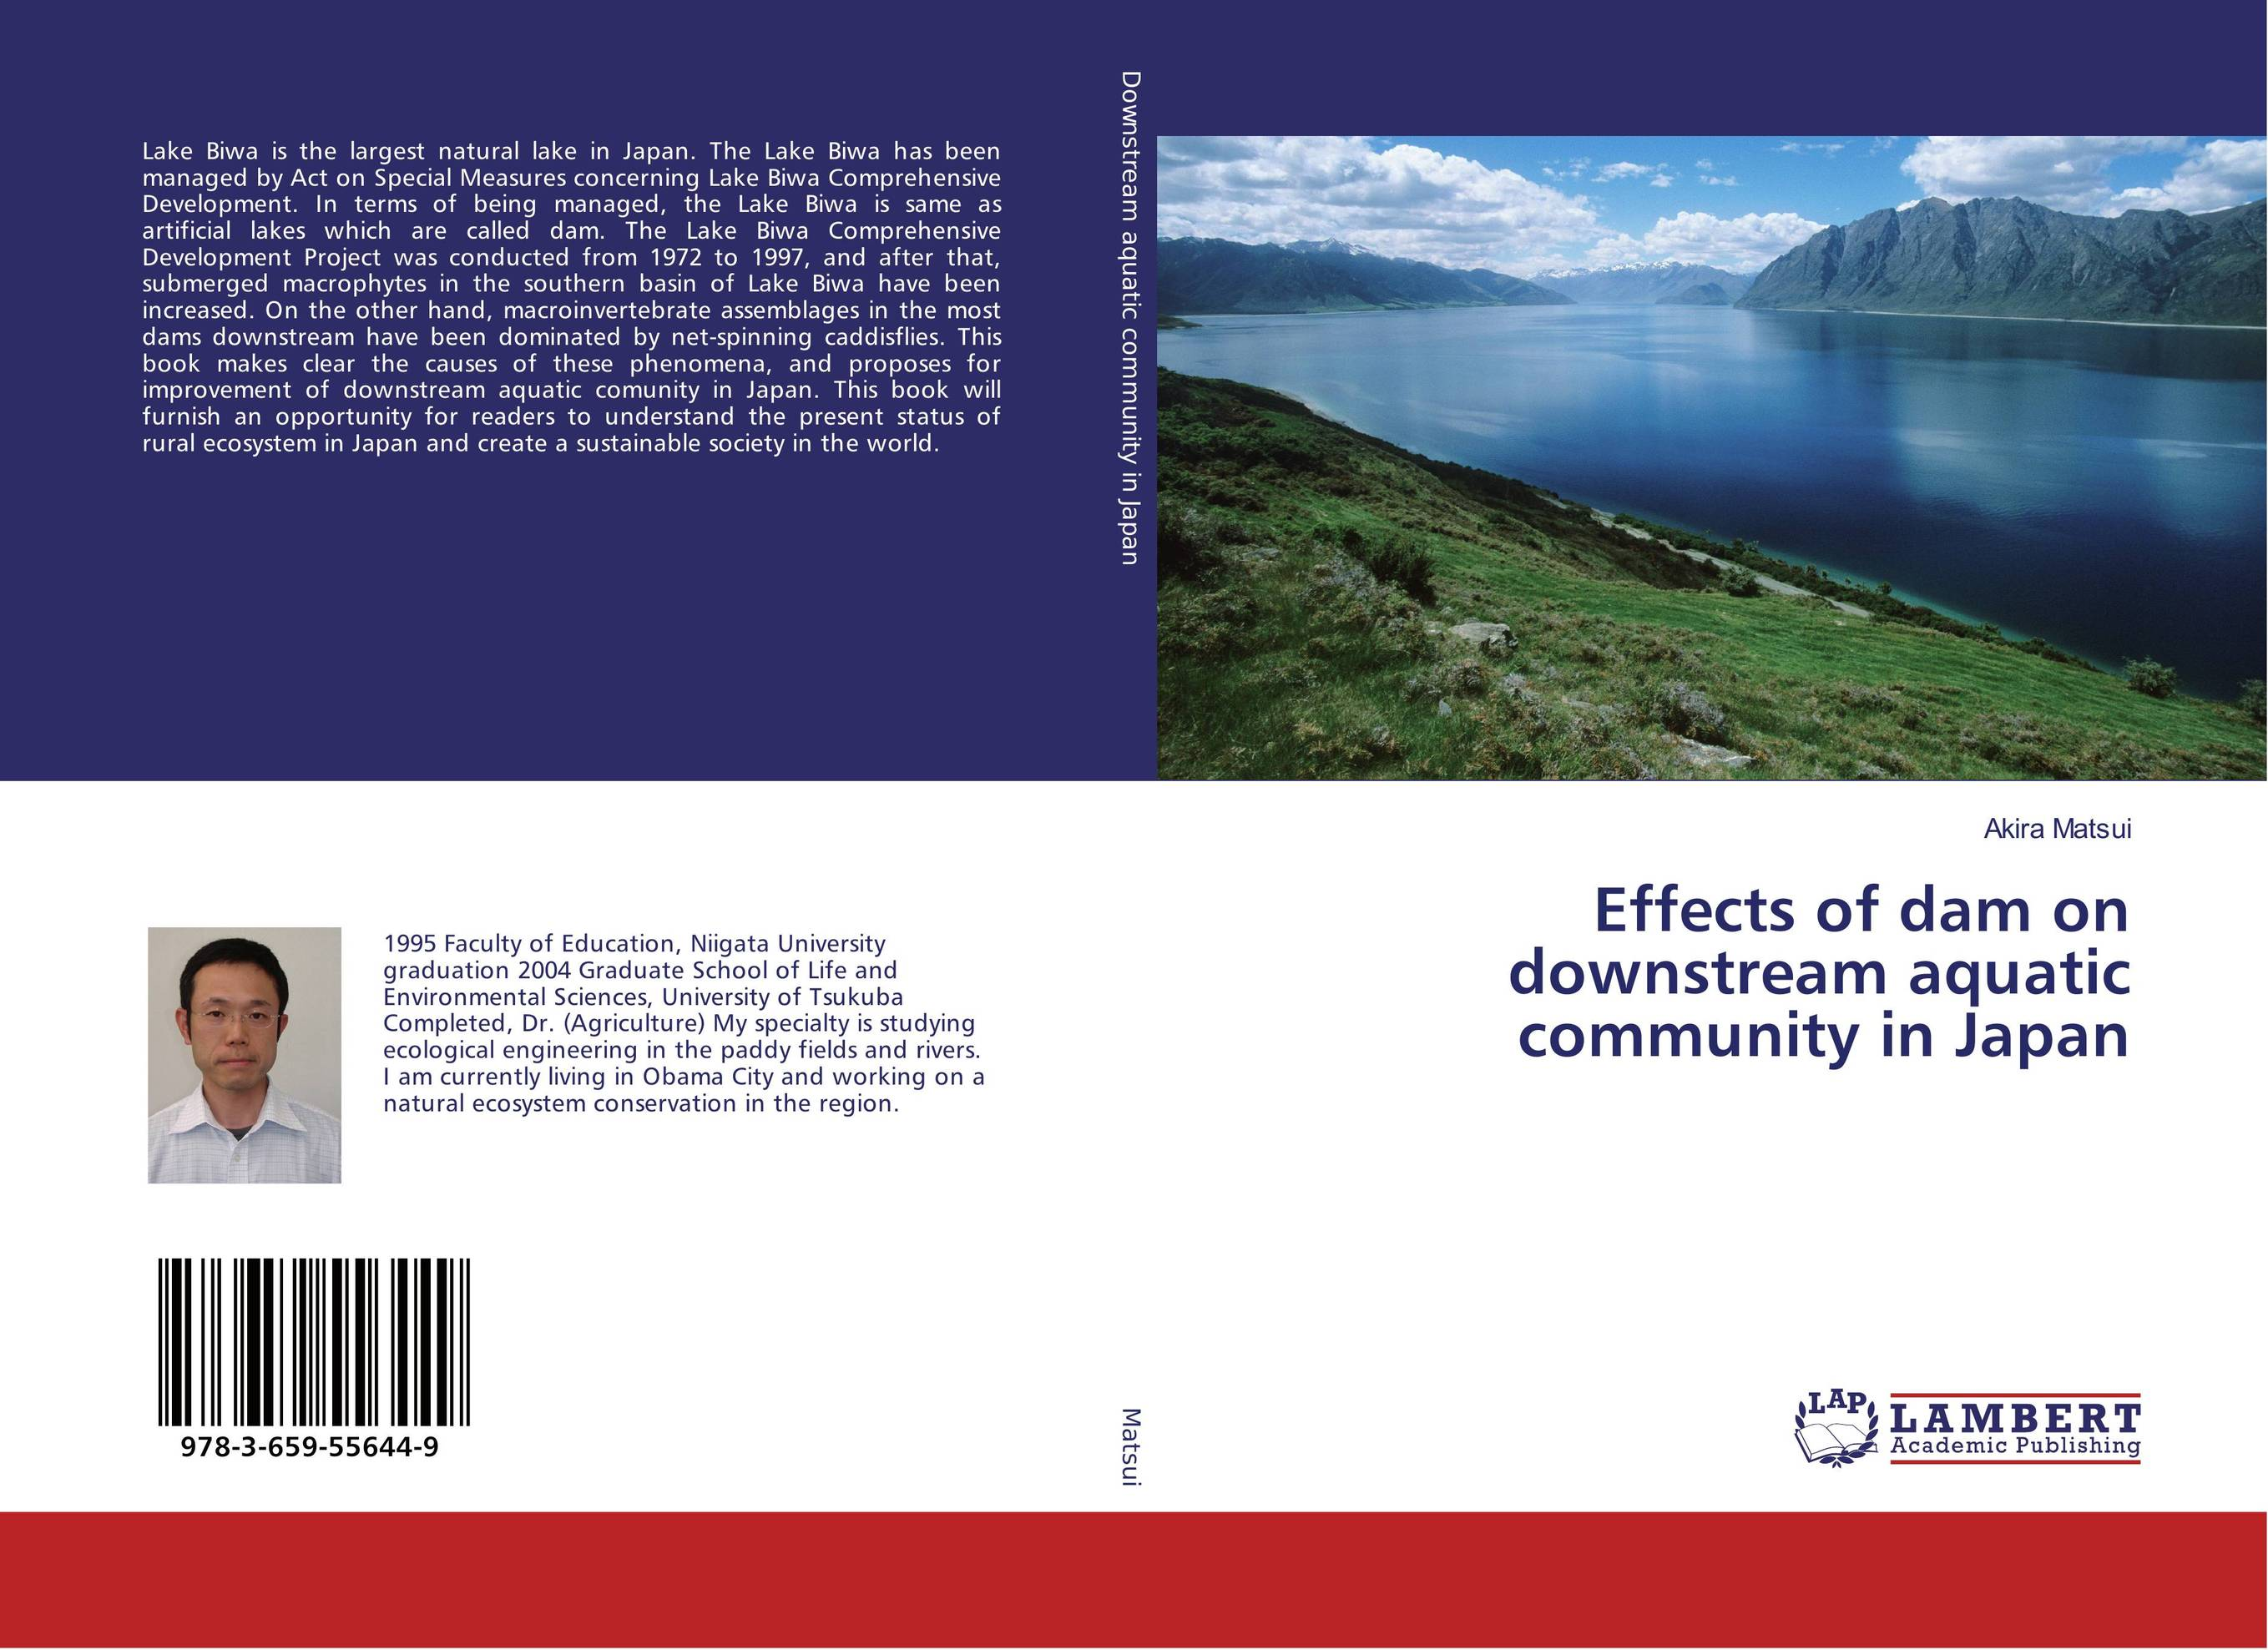 Effects of dam on downstream aquatic community in Japan the lake